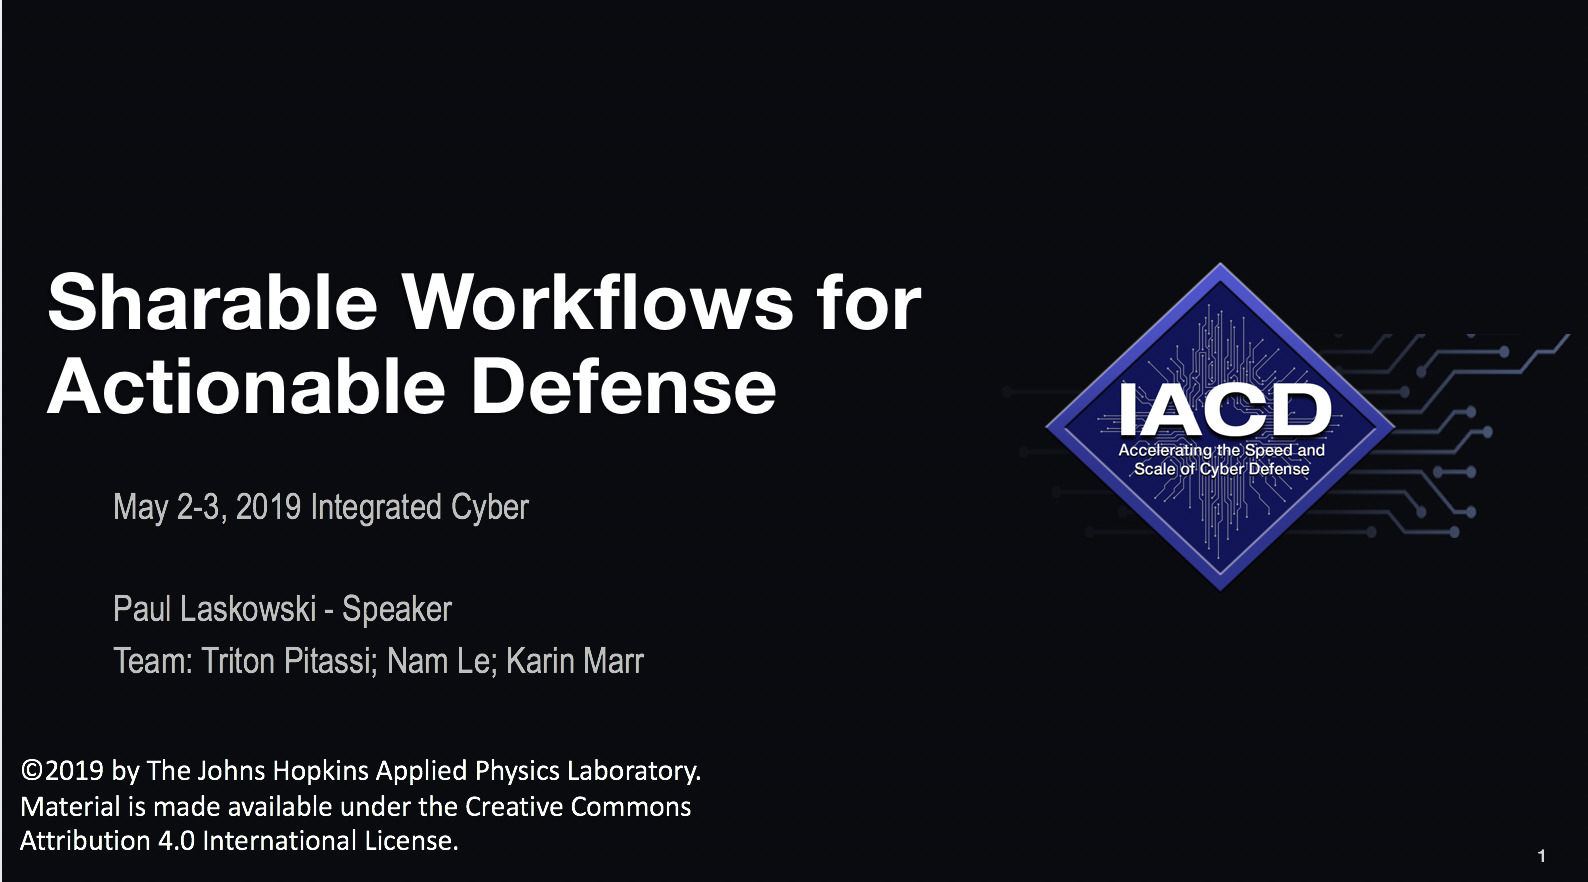 May 2019 Integrated Cyber — IACD